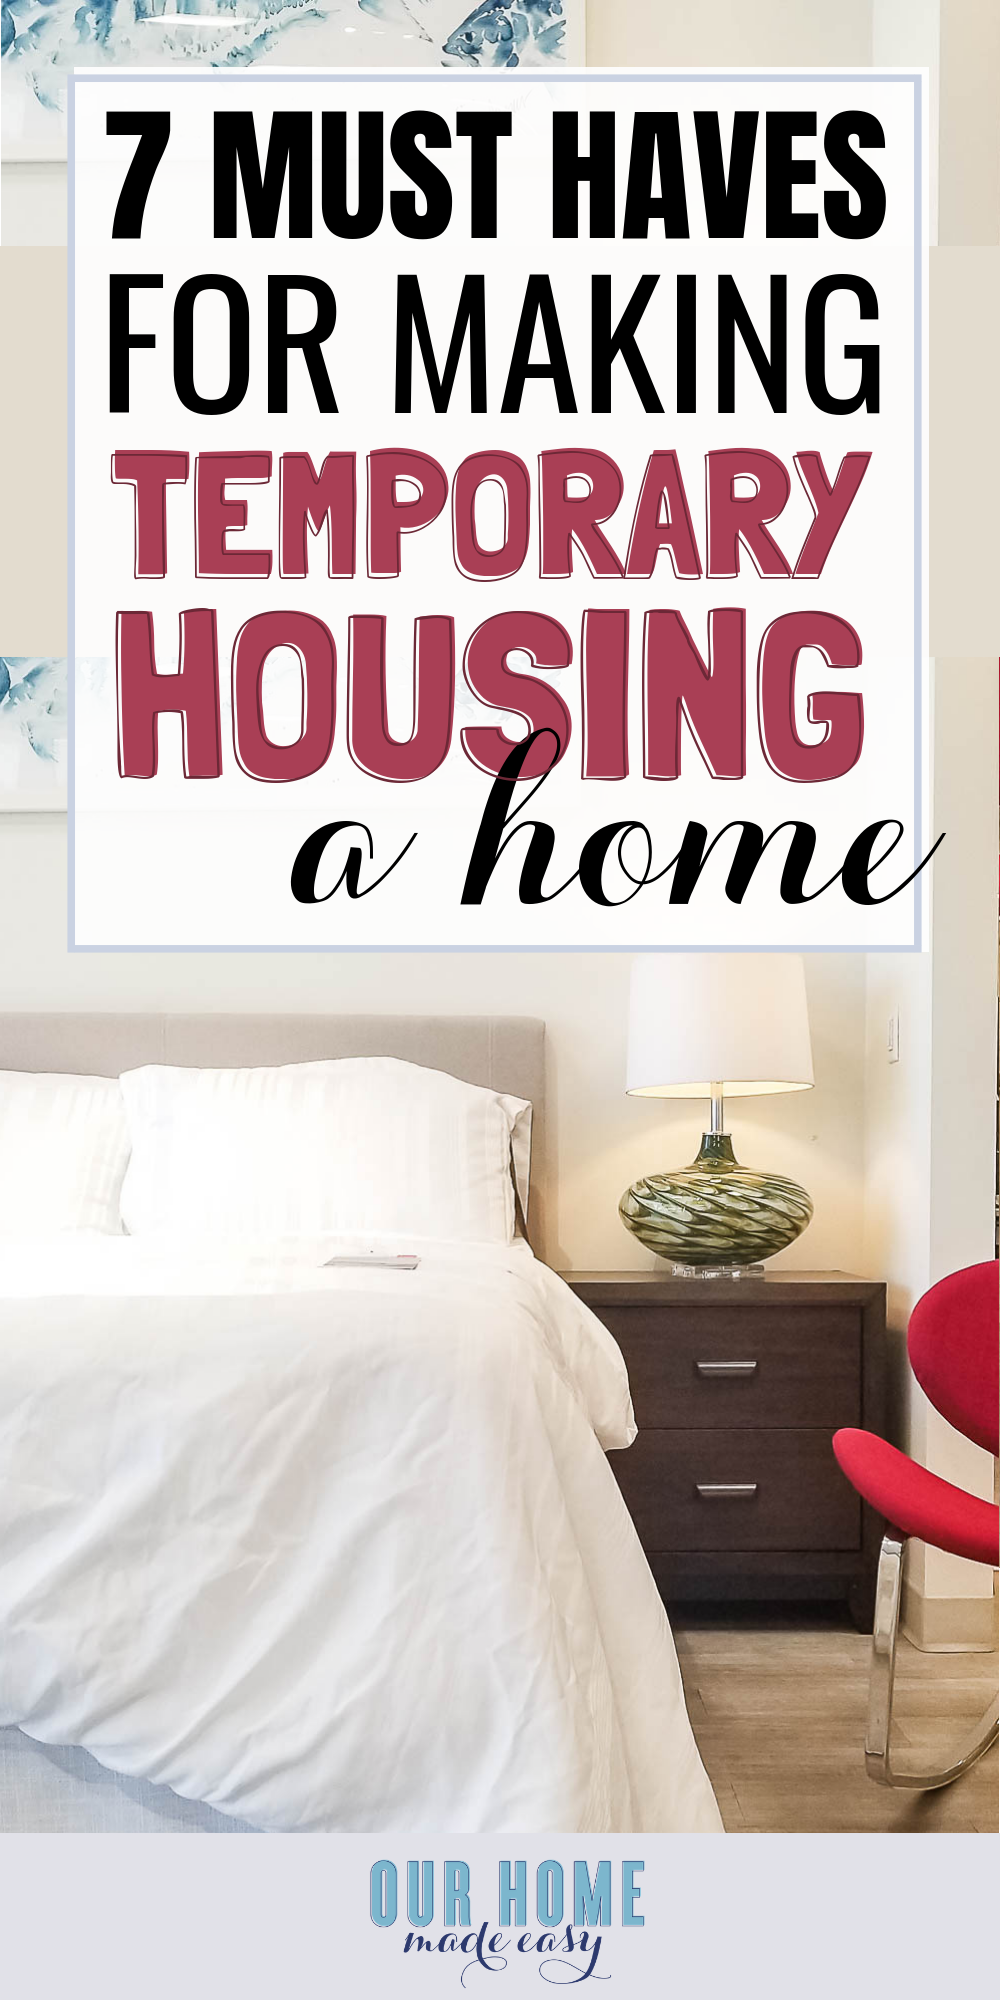 7 Must Have Home Decor Items to Make a Temporary House Feel Like Home